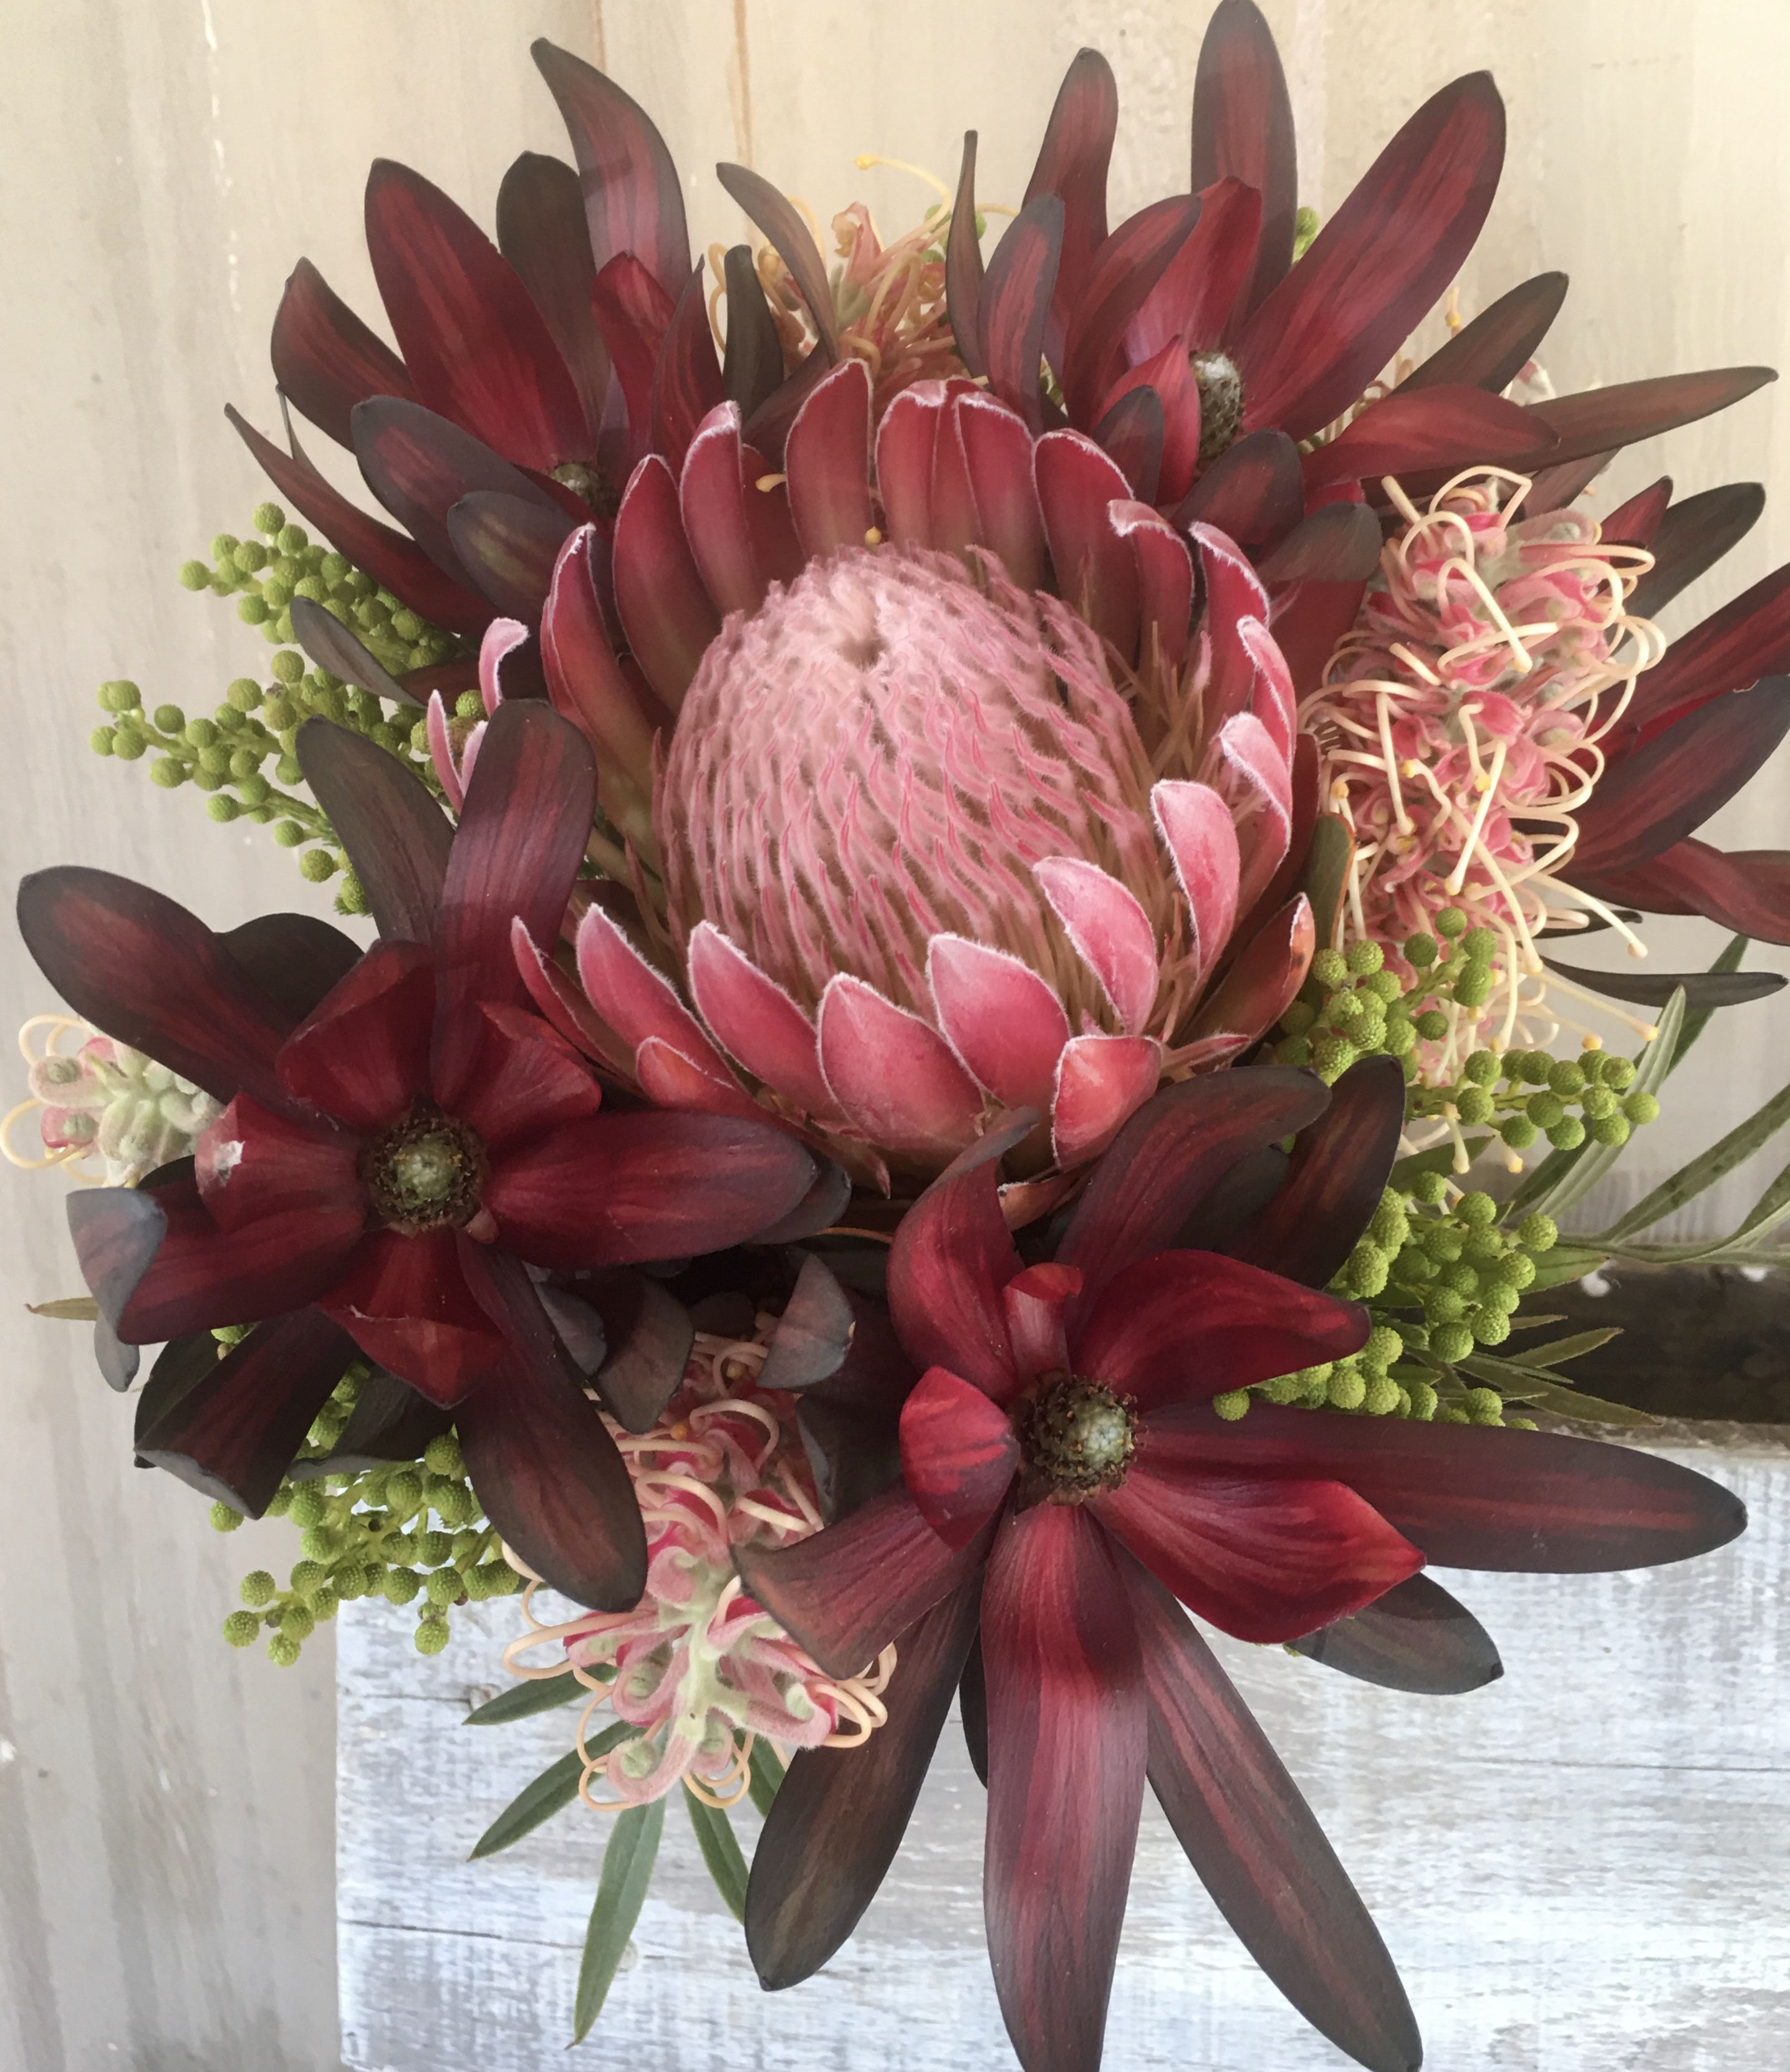 Mixed Protea Bouquets by Diana Roy in 2020 Protea